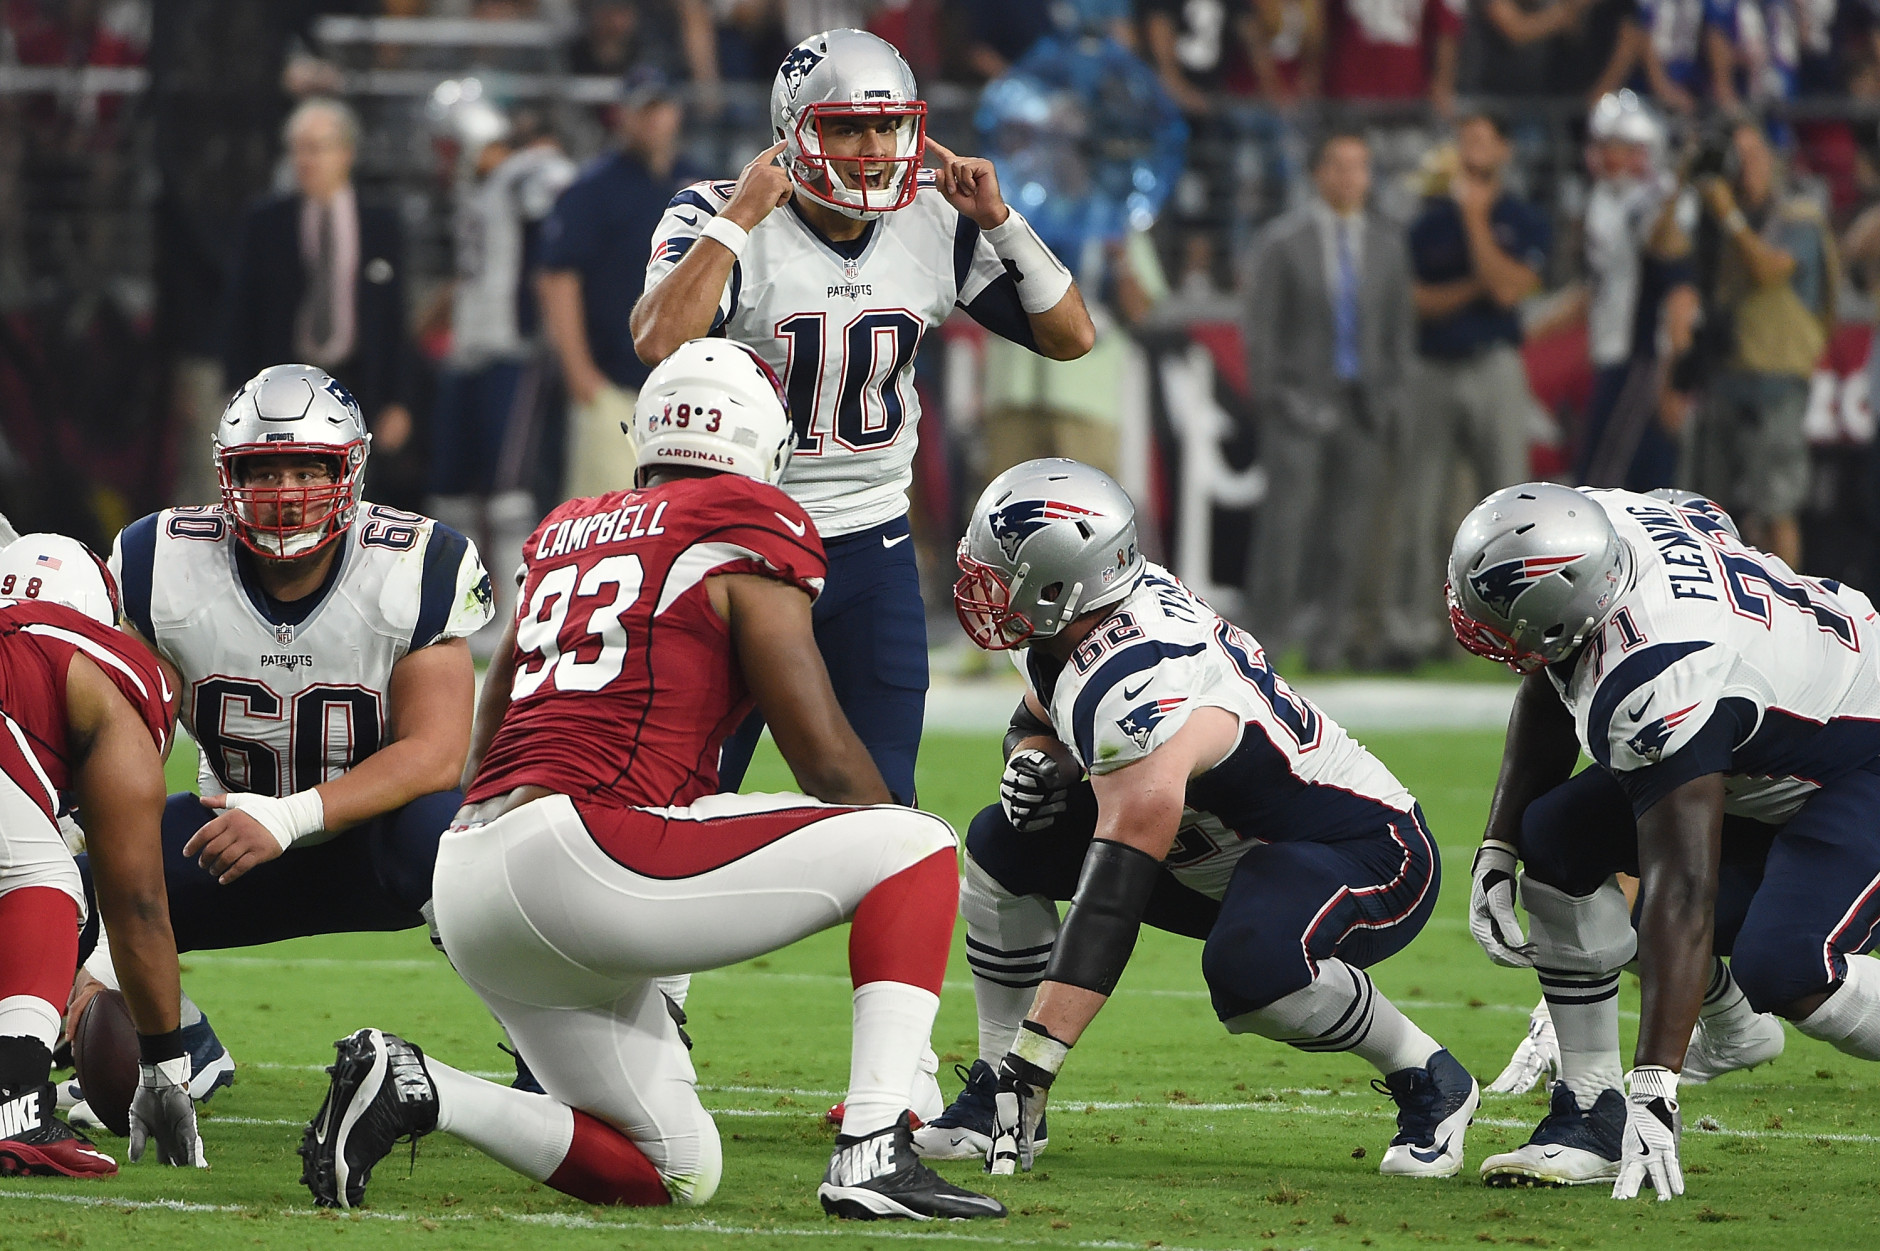 GLENDALE, AZ - SEPTEMBER 11: Quarterback Jimmy Garoppolo #10 of the New England Patriots calls a play on the line of scrimmage in the first quarter of the NFL game against the Arizona Cardinals at University of Phoenix Stadium on September 11, 2016 in Glendale, Arizona.  (Photo by Norm Hall/Getty Images)